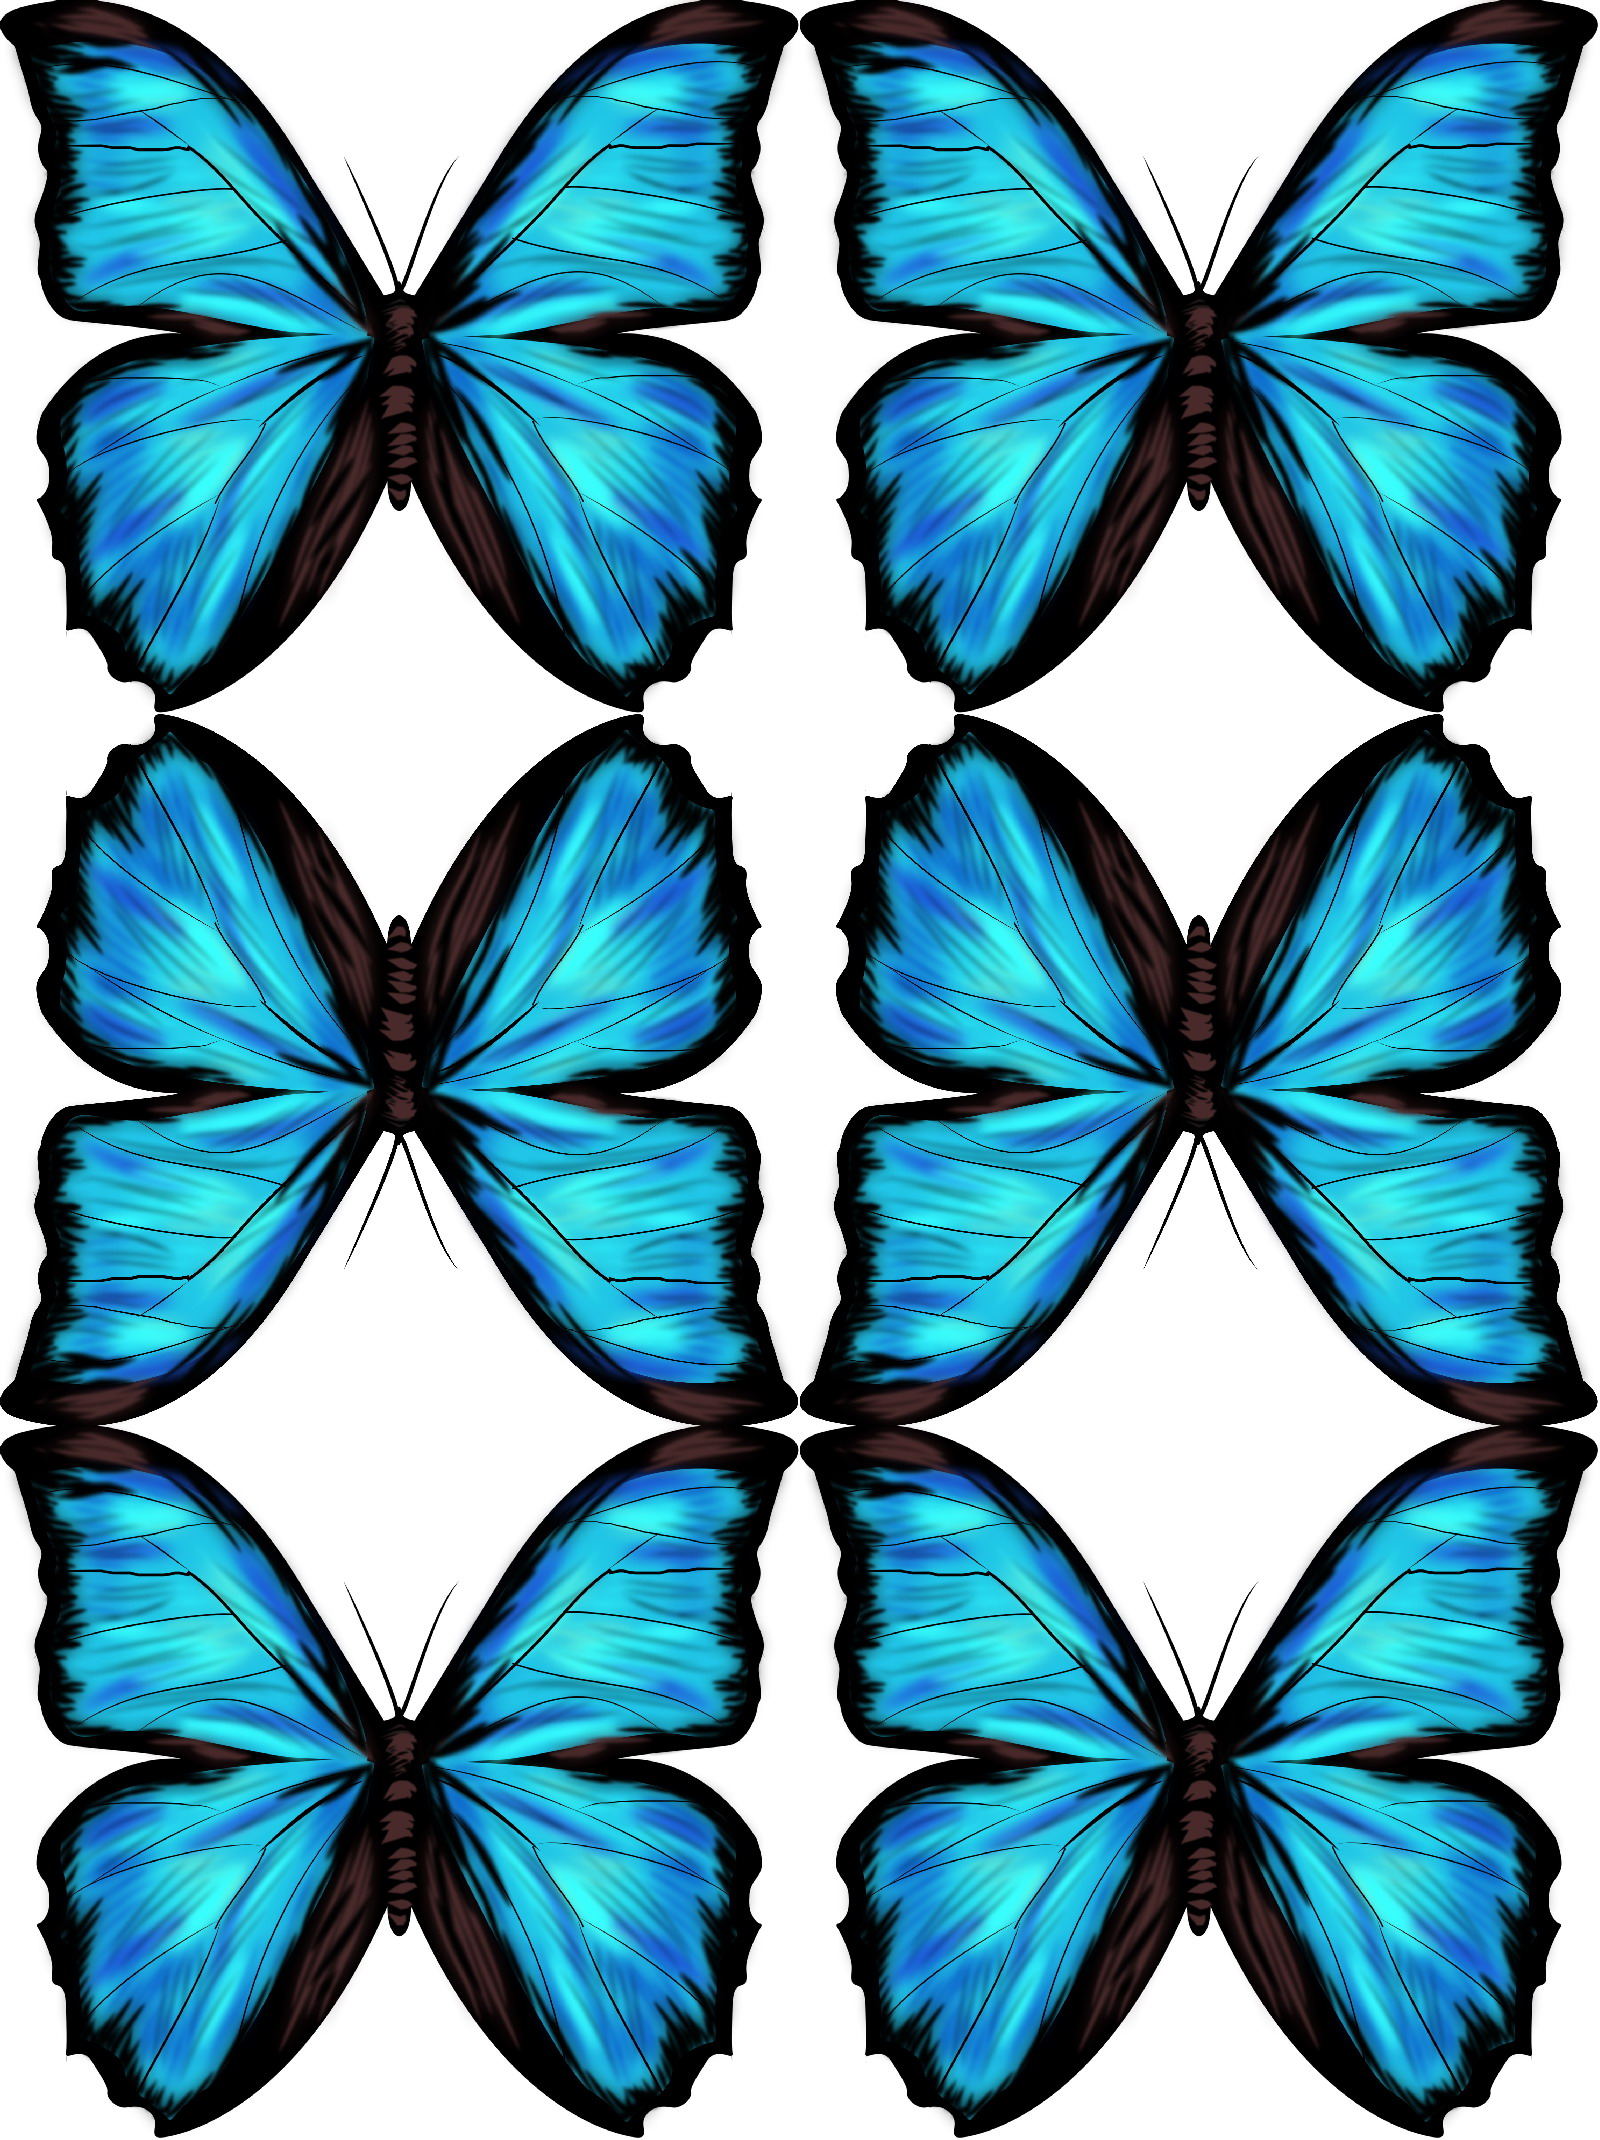 Drawn butterfly blue butterfly Free of download and tutorial